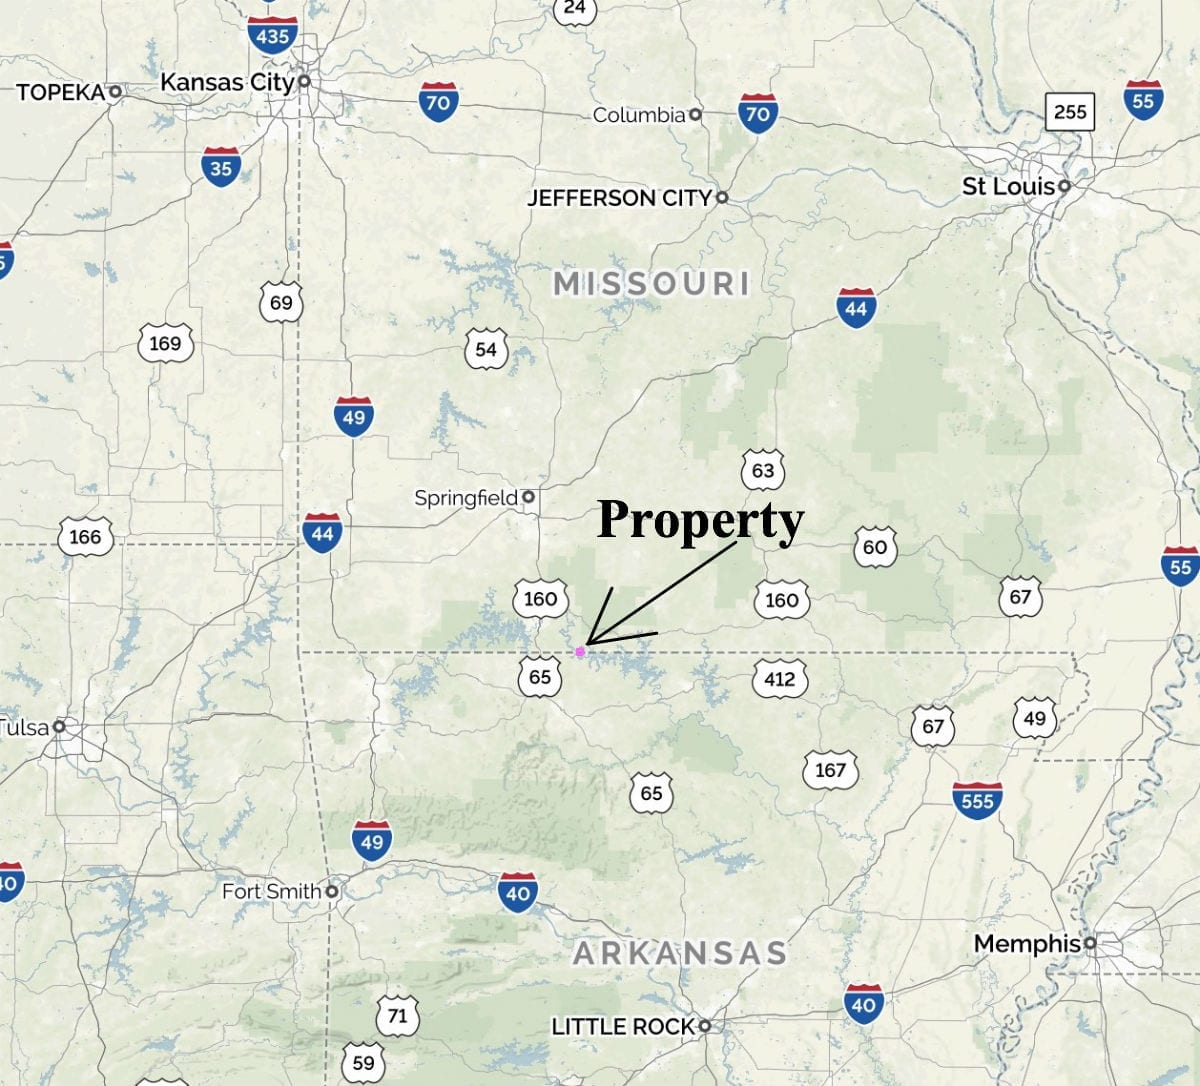 Excellent centralized location. Only a half-day's drive to numerous large cities including St. Louis, Kansas City, Tulsa, Little Rock and Memphis.